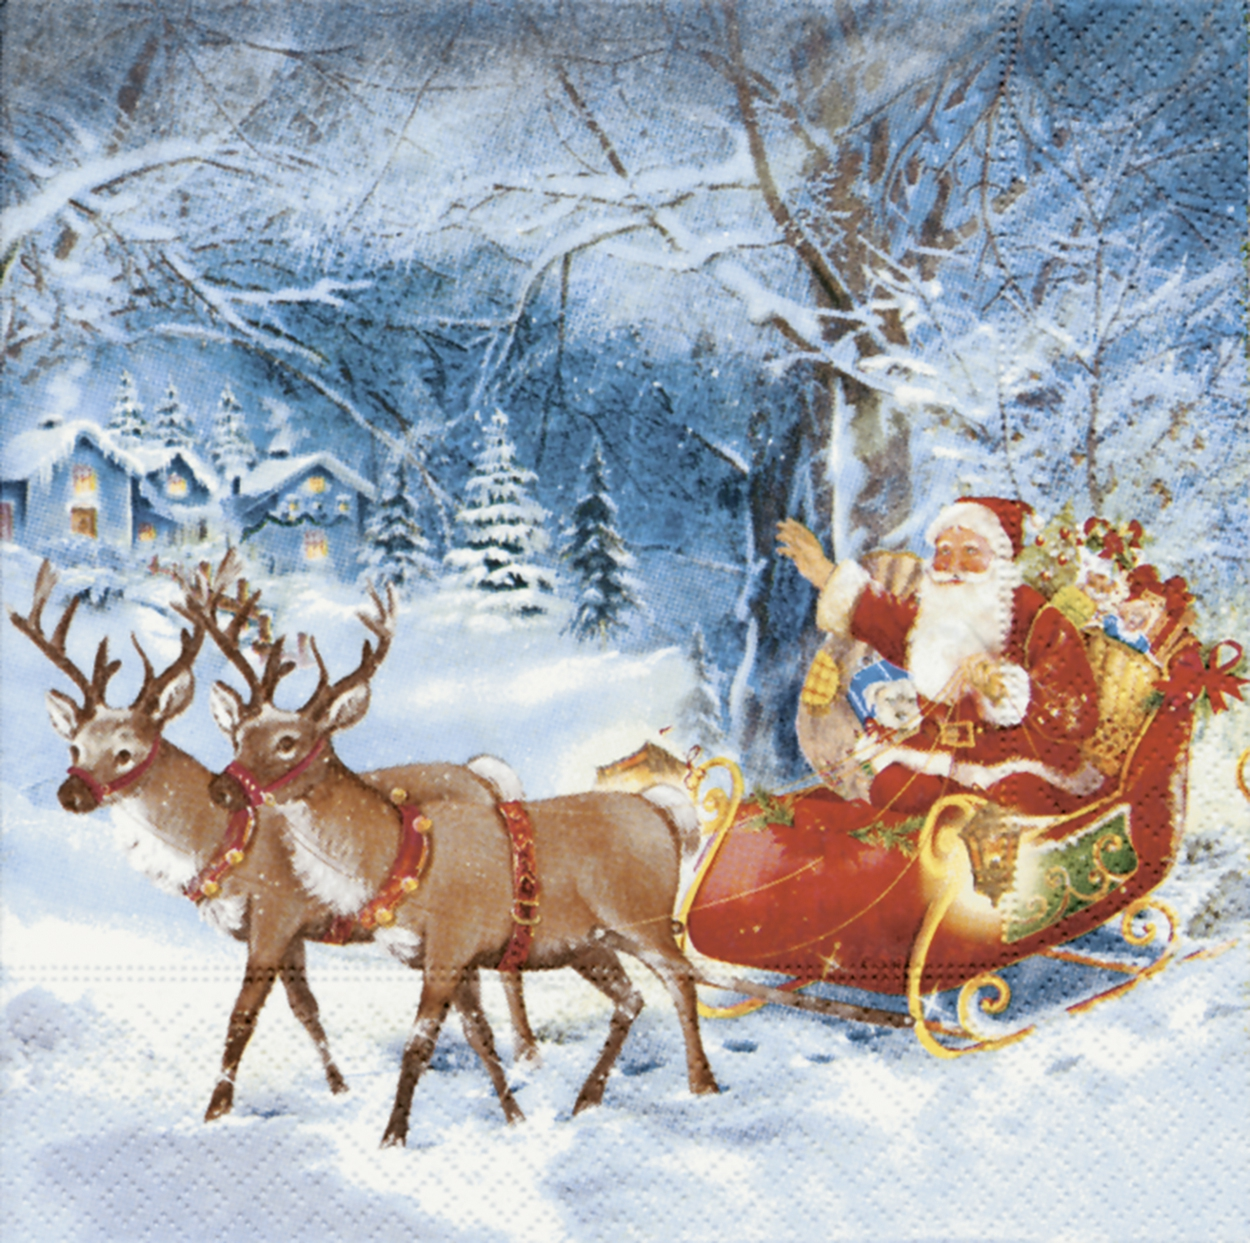 20 Servietten - 33 x 33 cm Santa on tour,  Winter - Schlitten,  Tiere - Reh / Hirsch,  Weihnachten,  lunchservietten